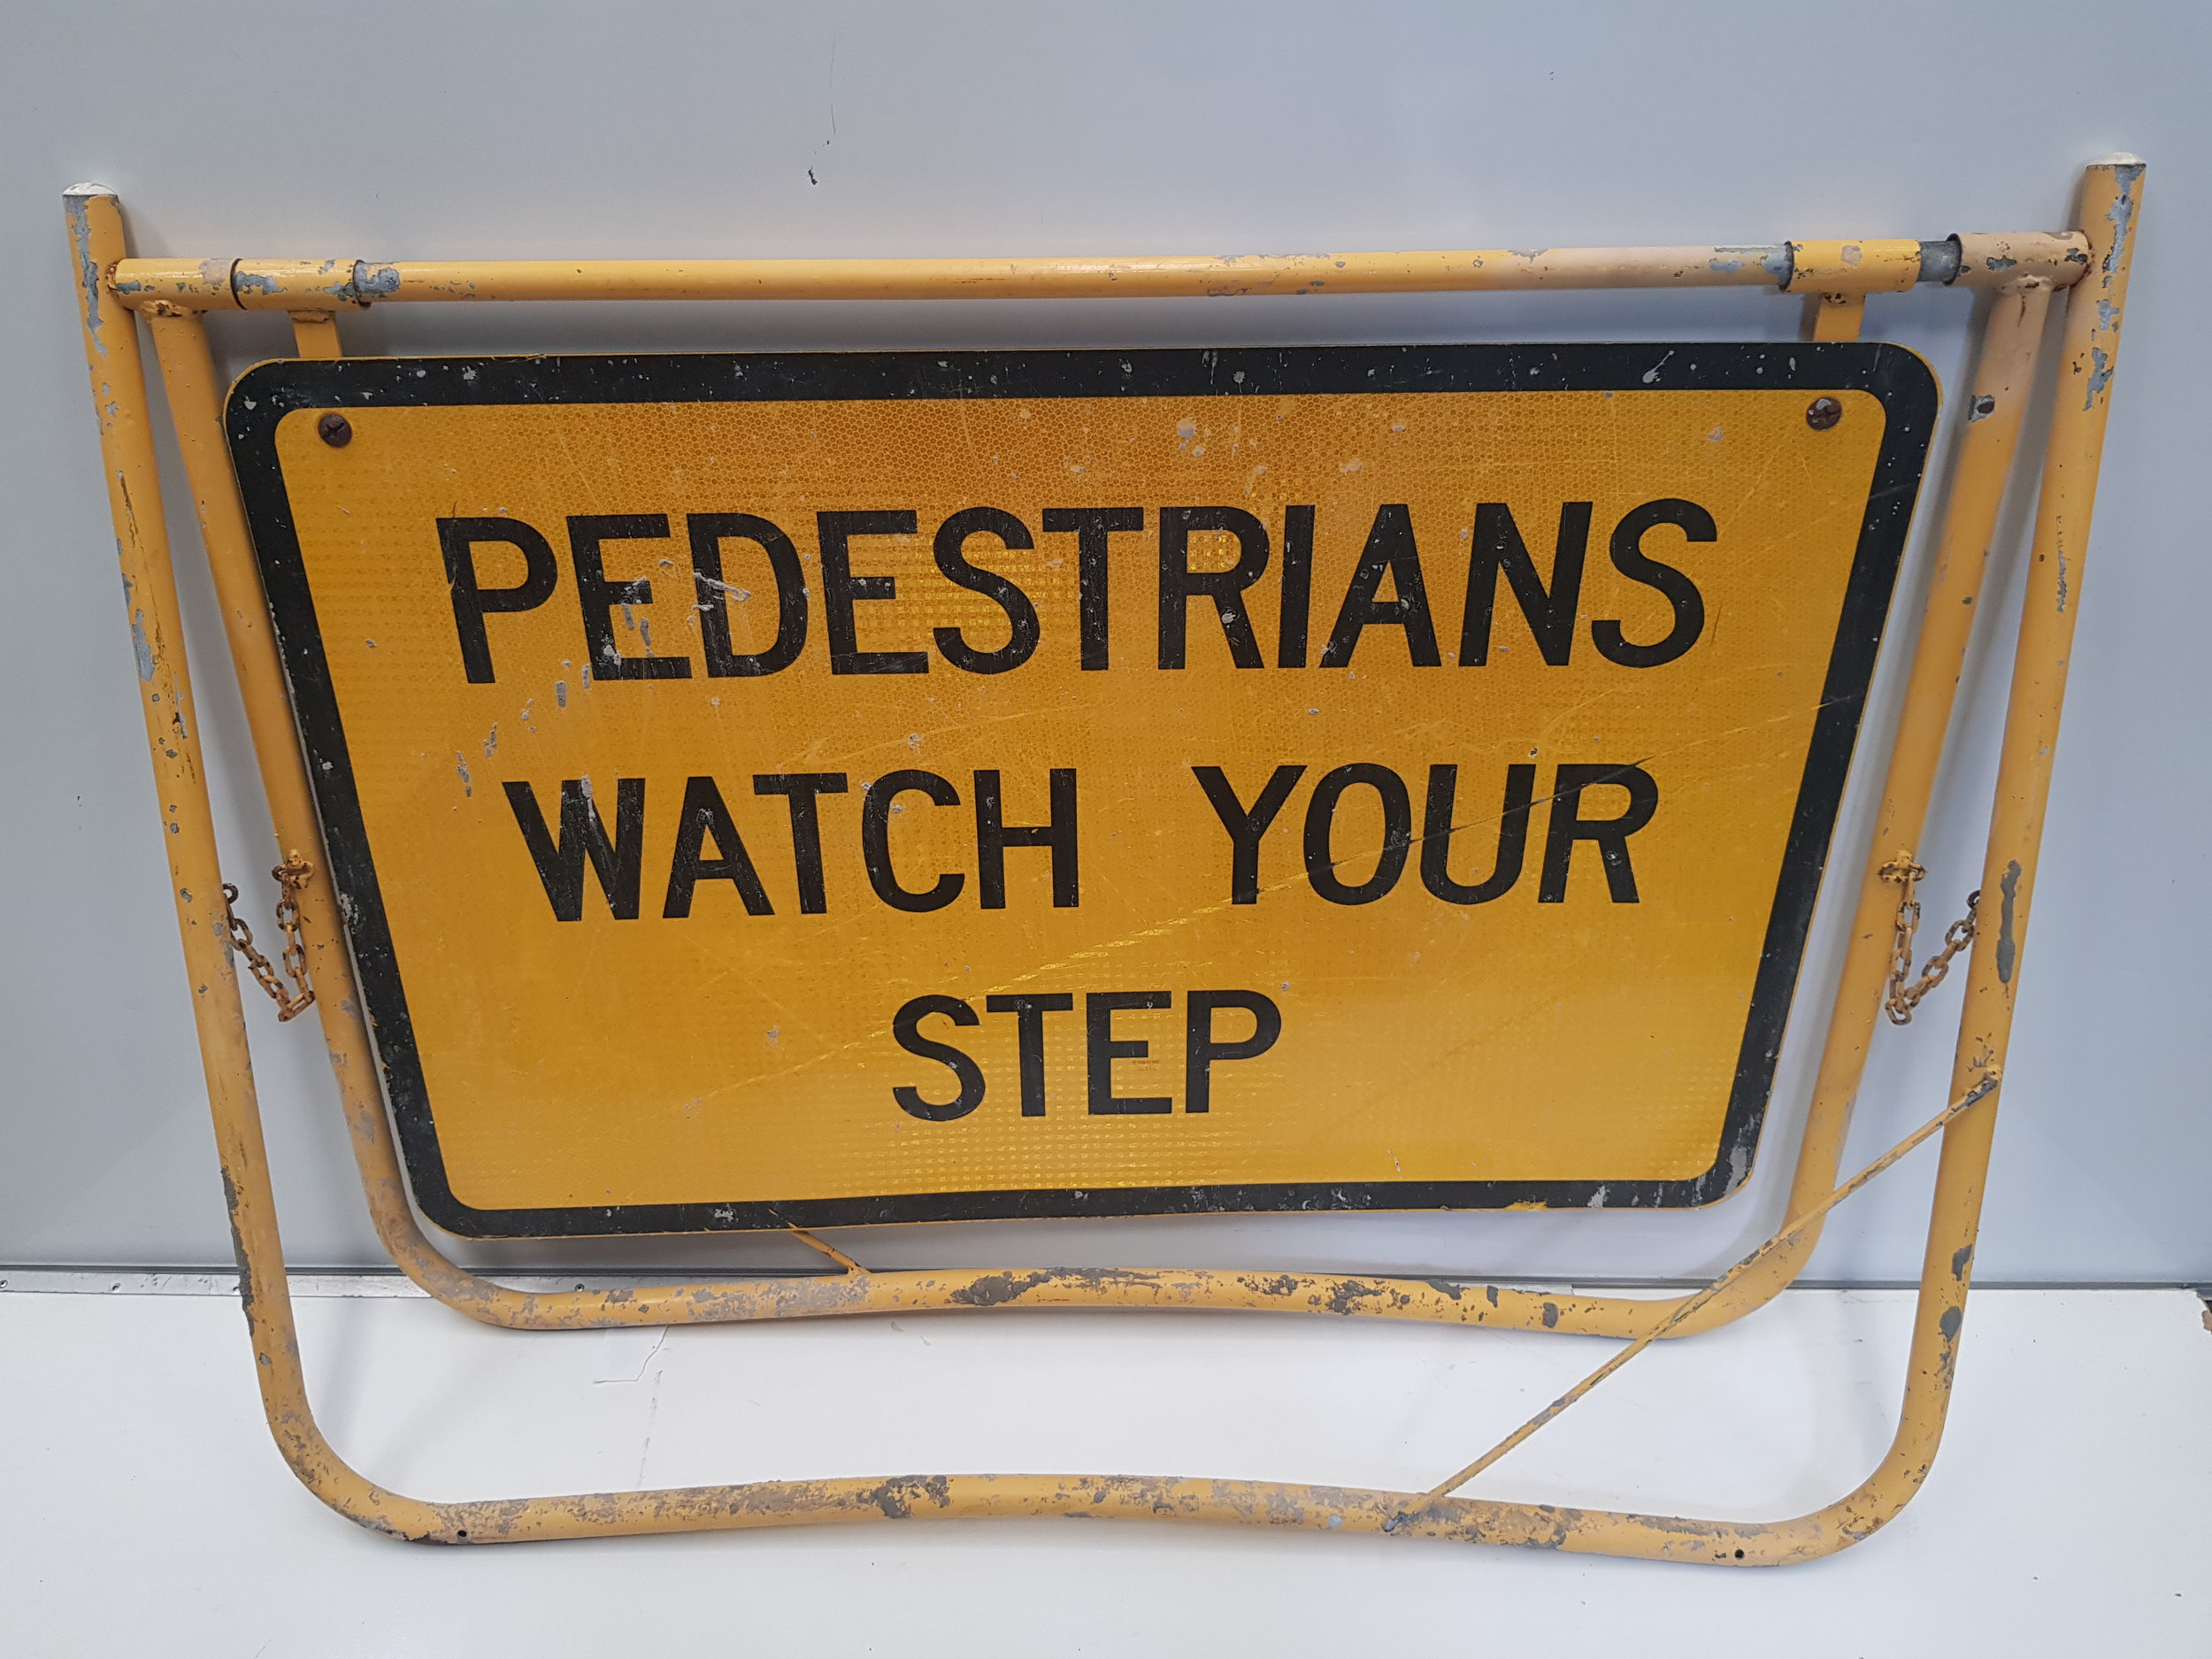 Pedestrians Watch Your Step Swing Stand Sign.jpg